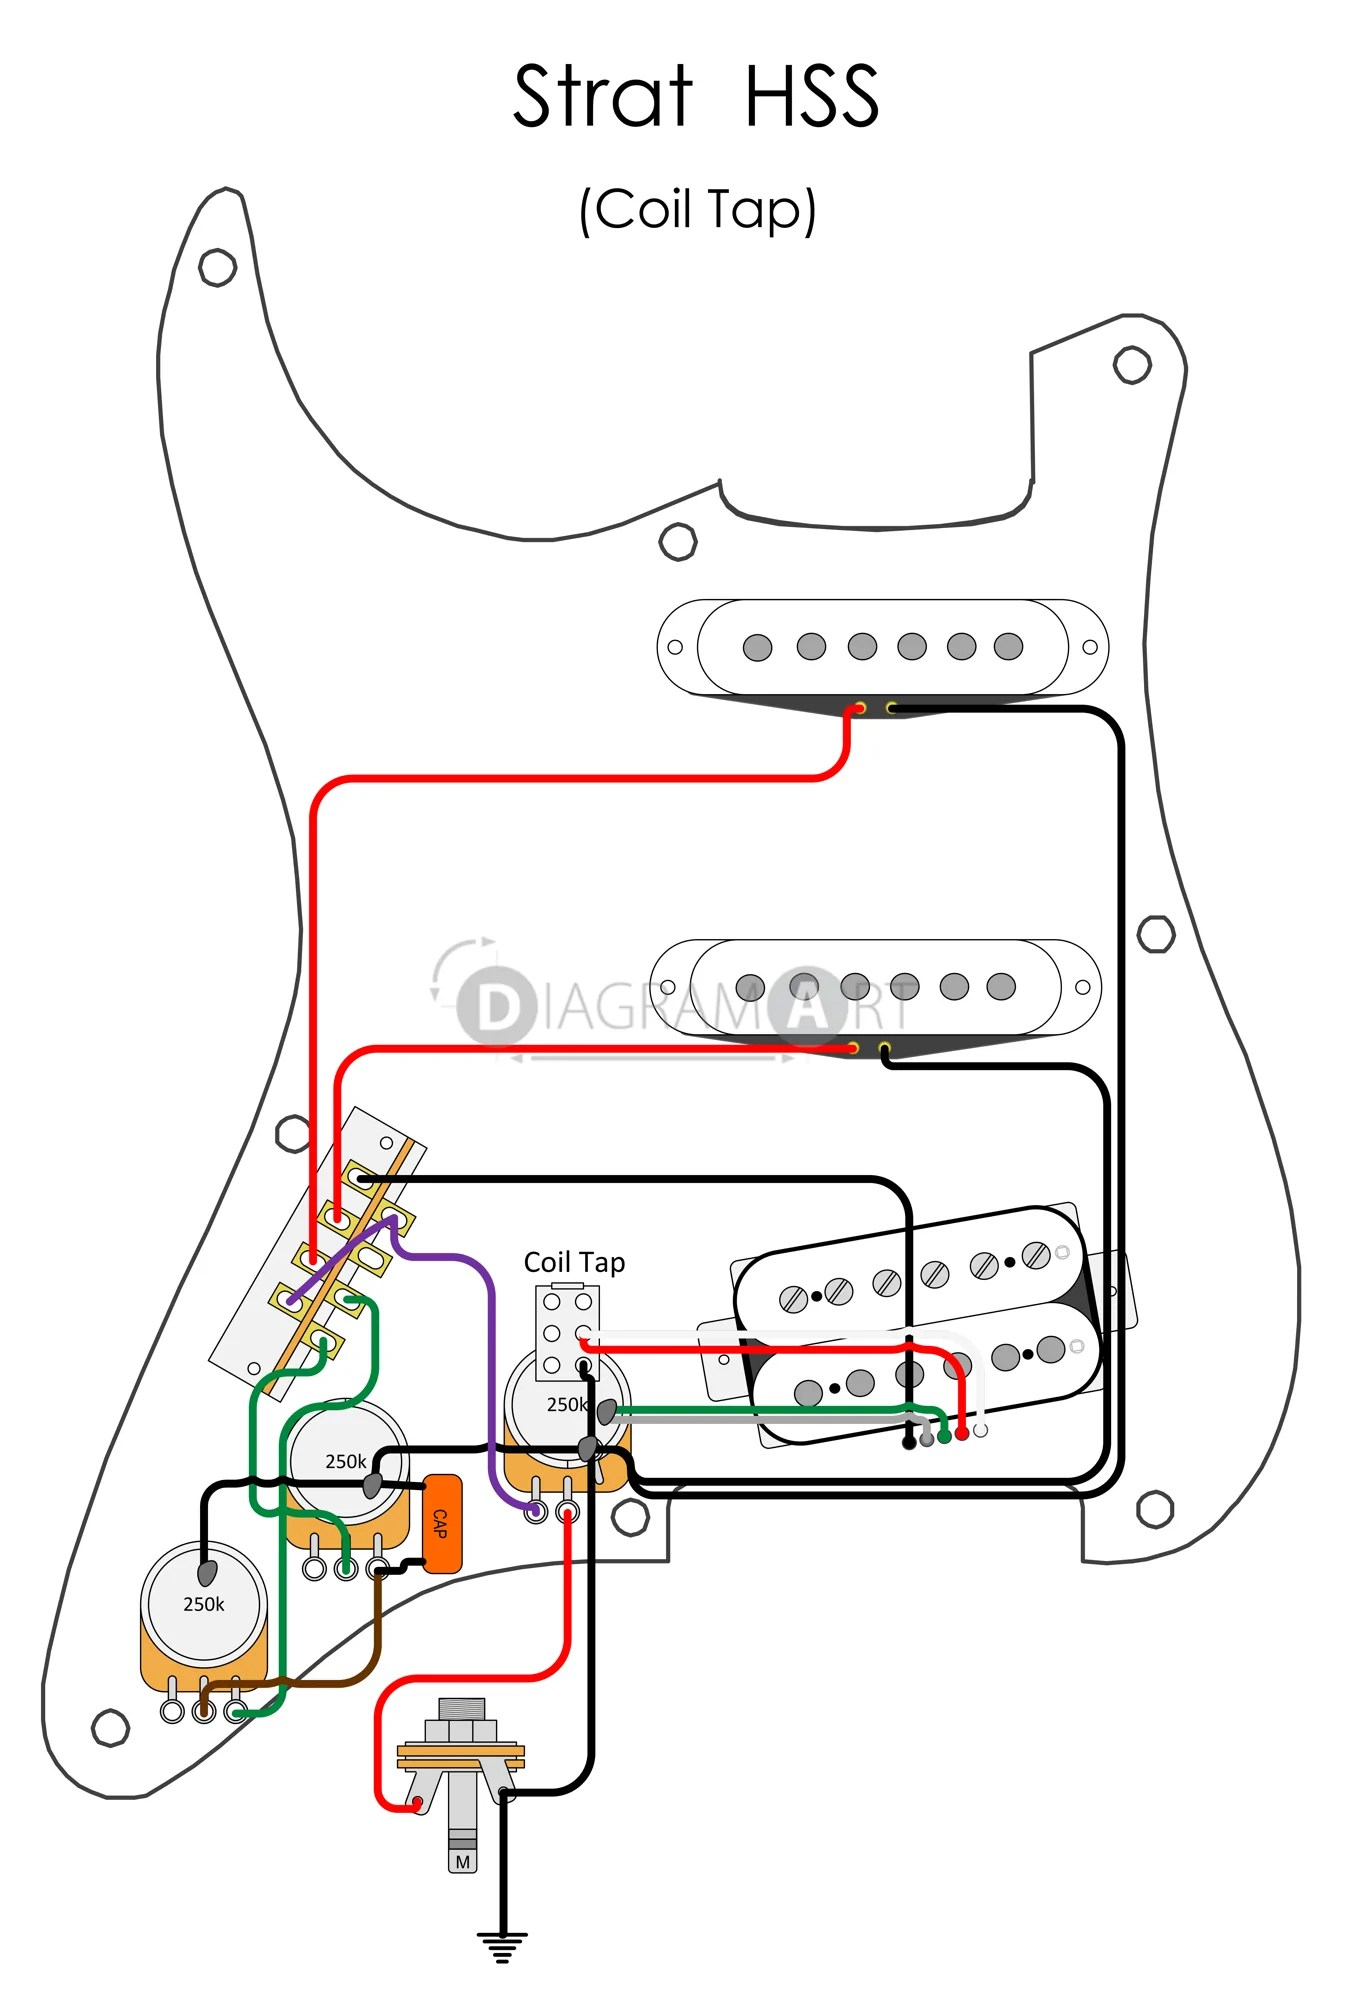 ssh wiring diagram schema diagram database hss wiring diagram dimarzio hss wiring diagram switch wiring diagram [ 1348 x 2000 Pixel ]